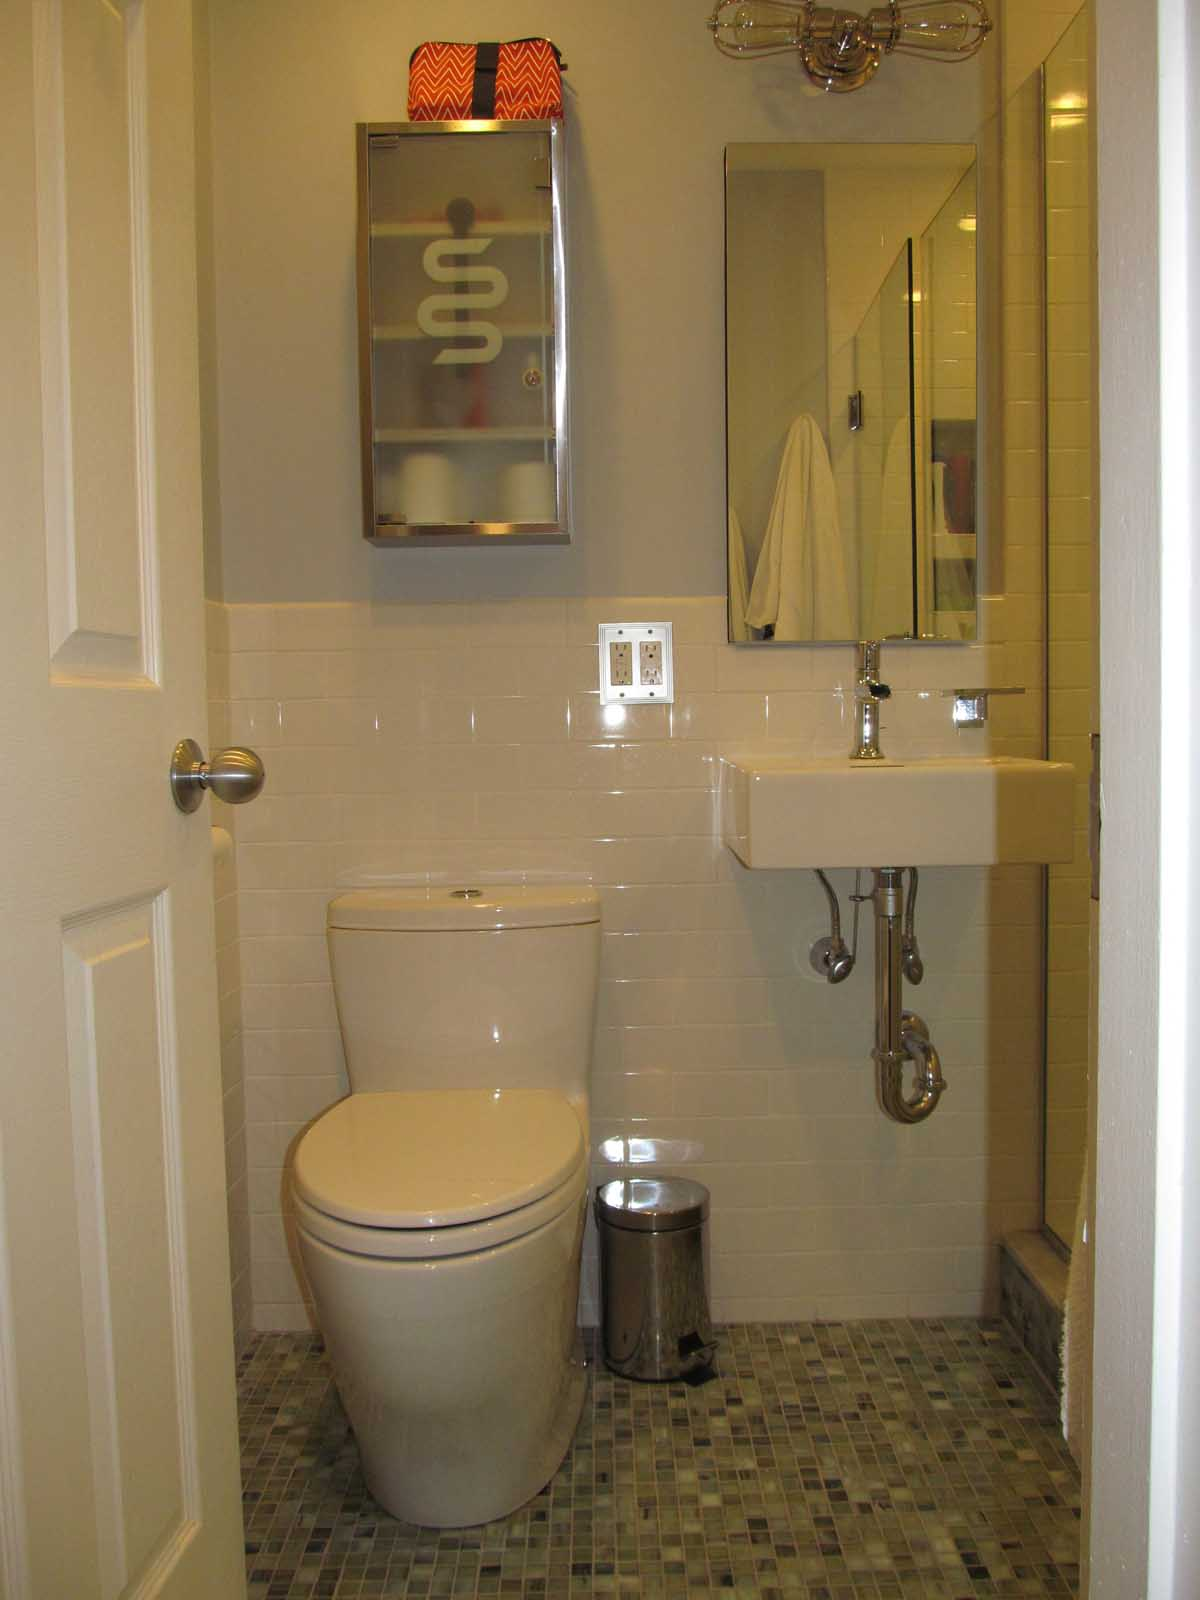 Bathroom Remodel   Appleton St.   Boston MA